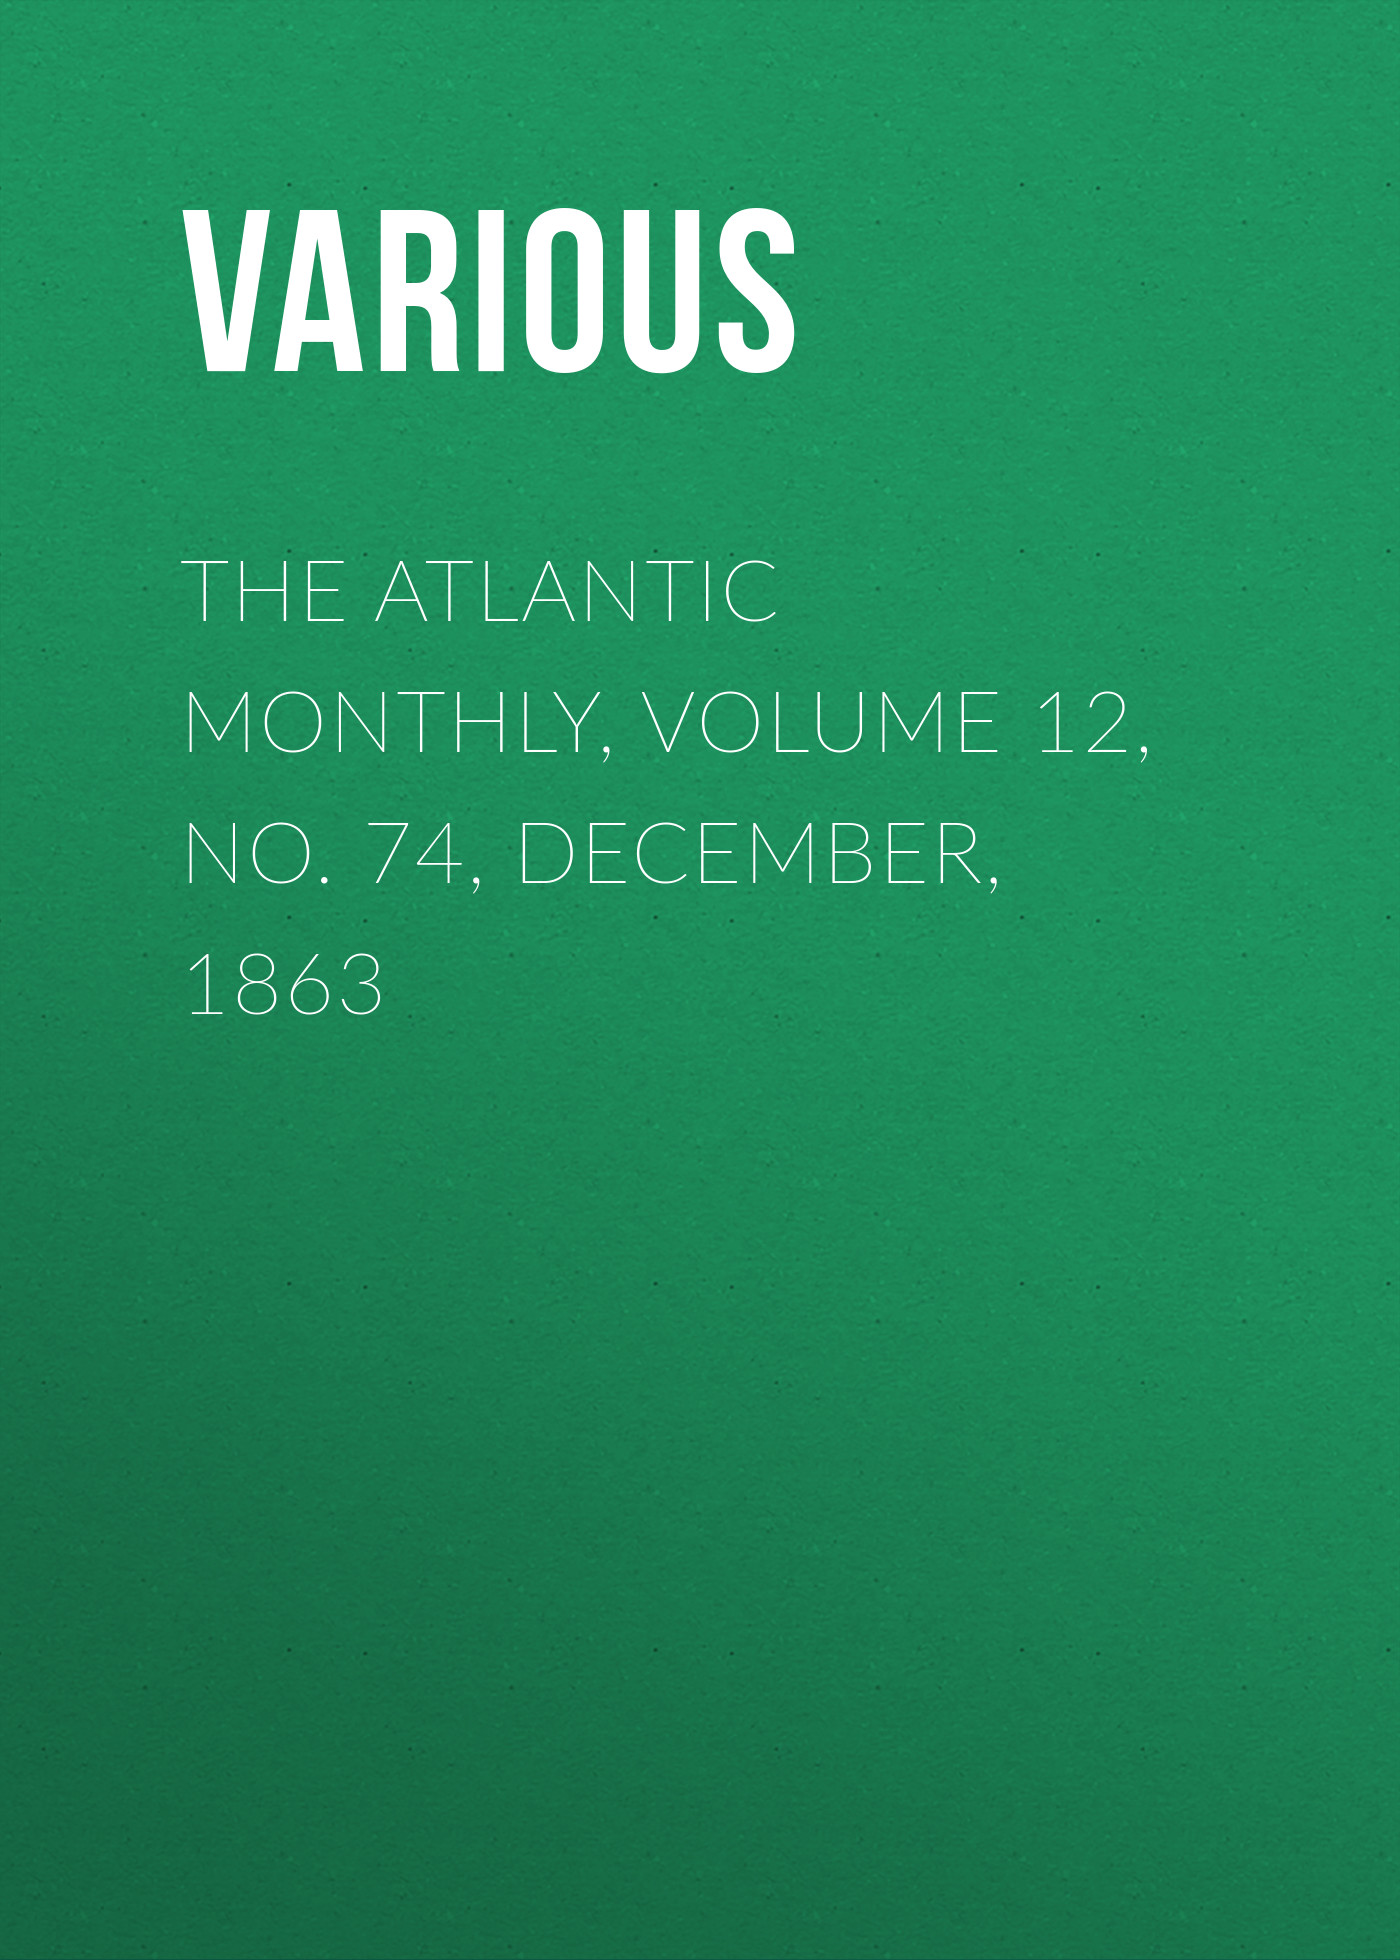 Various The Atlantic Monthly, Volume 12, No. 74, December, 1863 various the atlantic monthly volume 11 no 63 january 1863